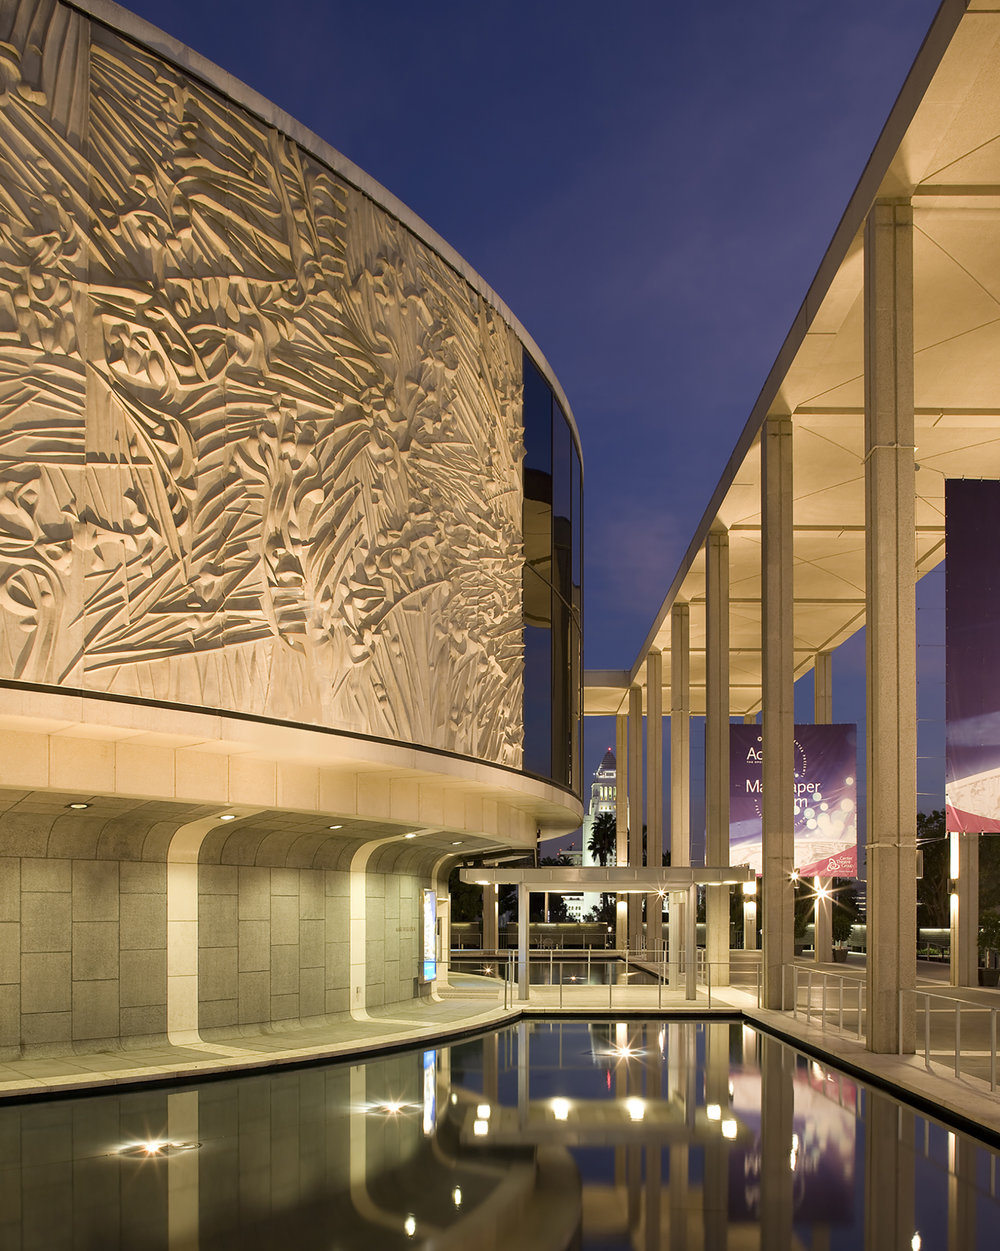 MARK TAPER FORUM | Los Angeles, California